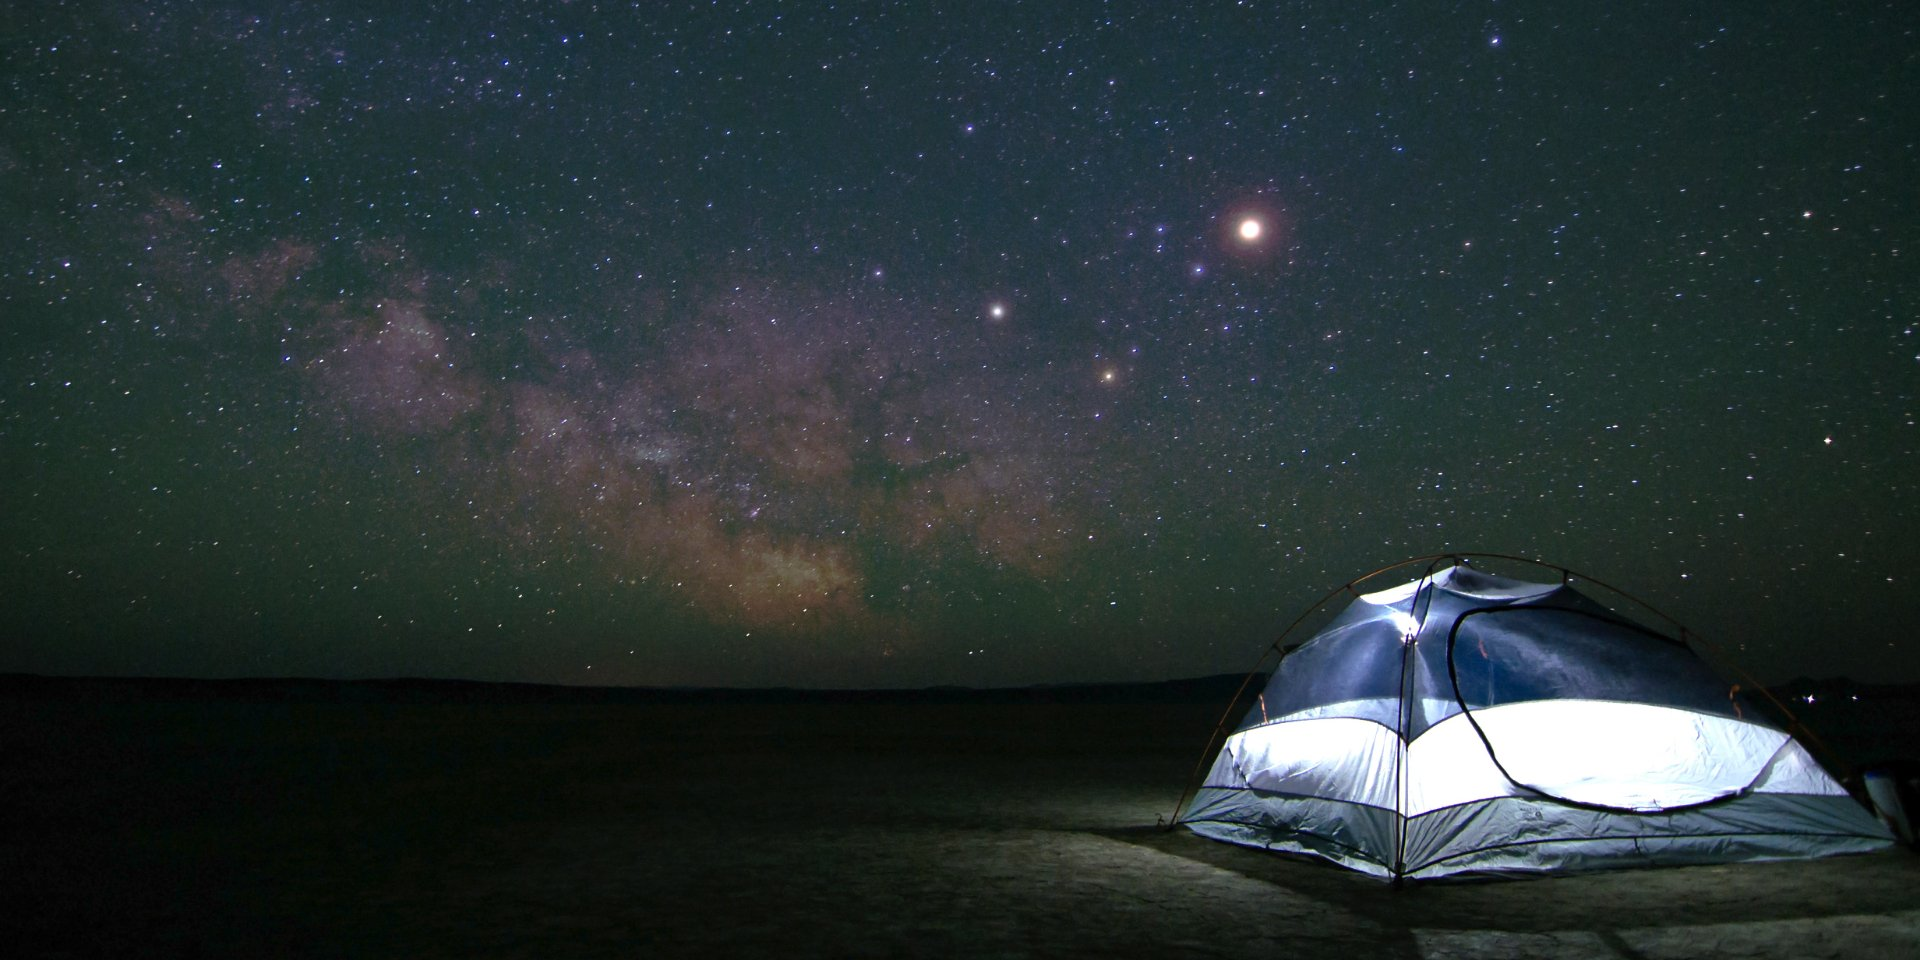 7 best tents for stargazing: tents with best views in 2020